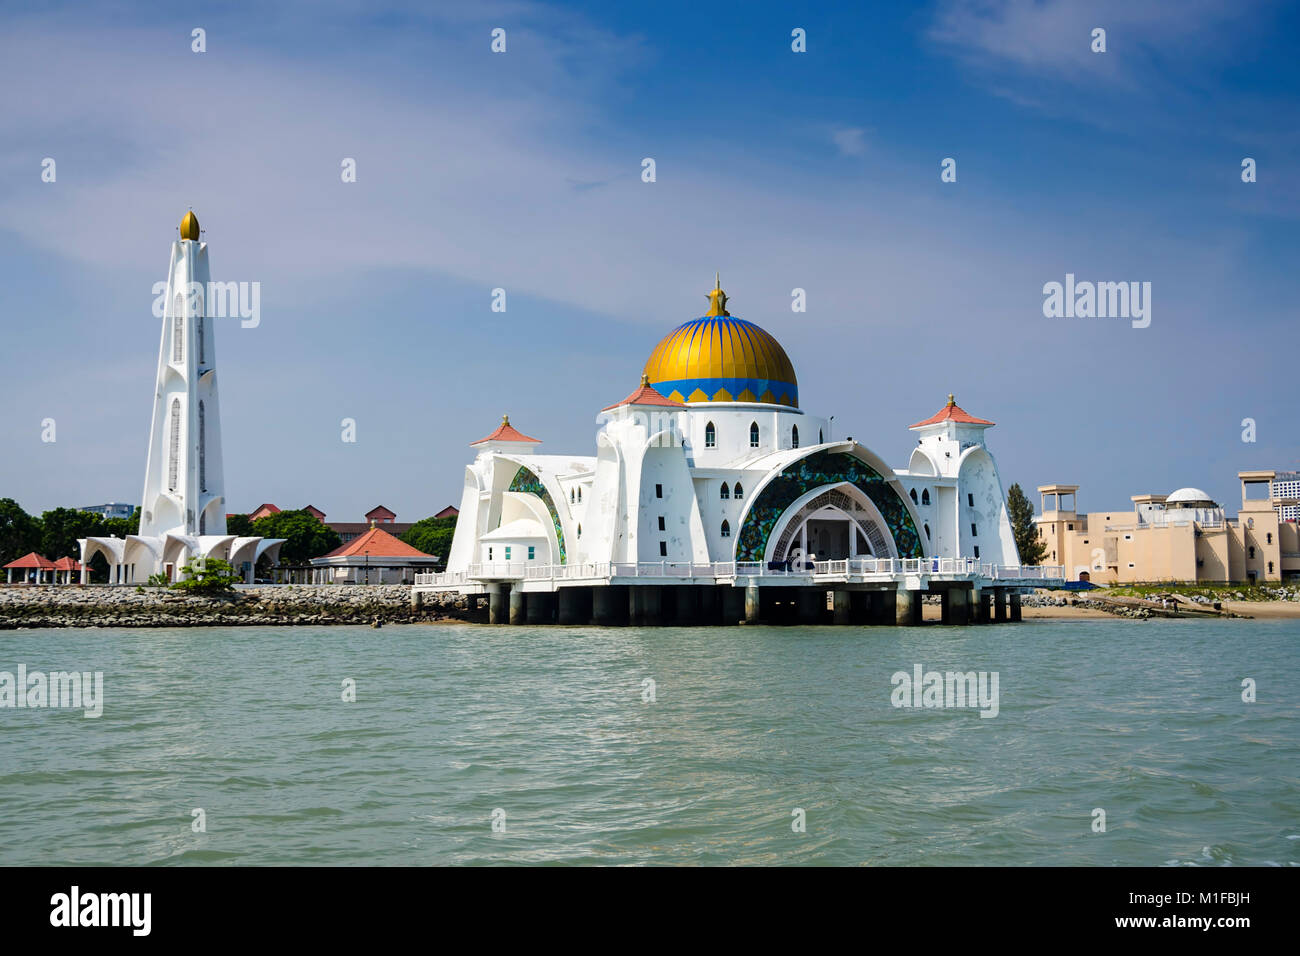 Image Result For Islamic New Year Malaysiaa